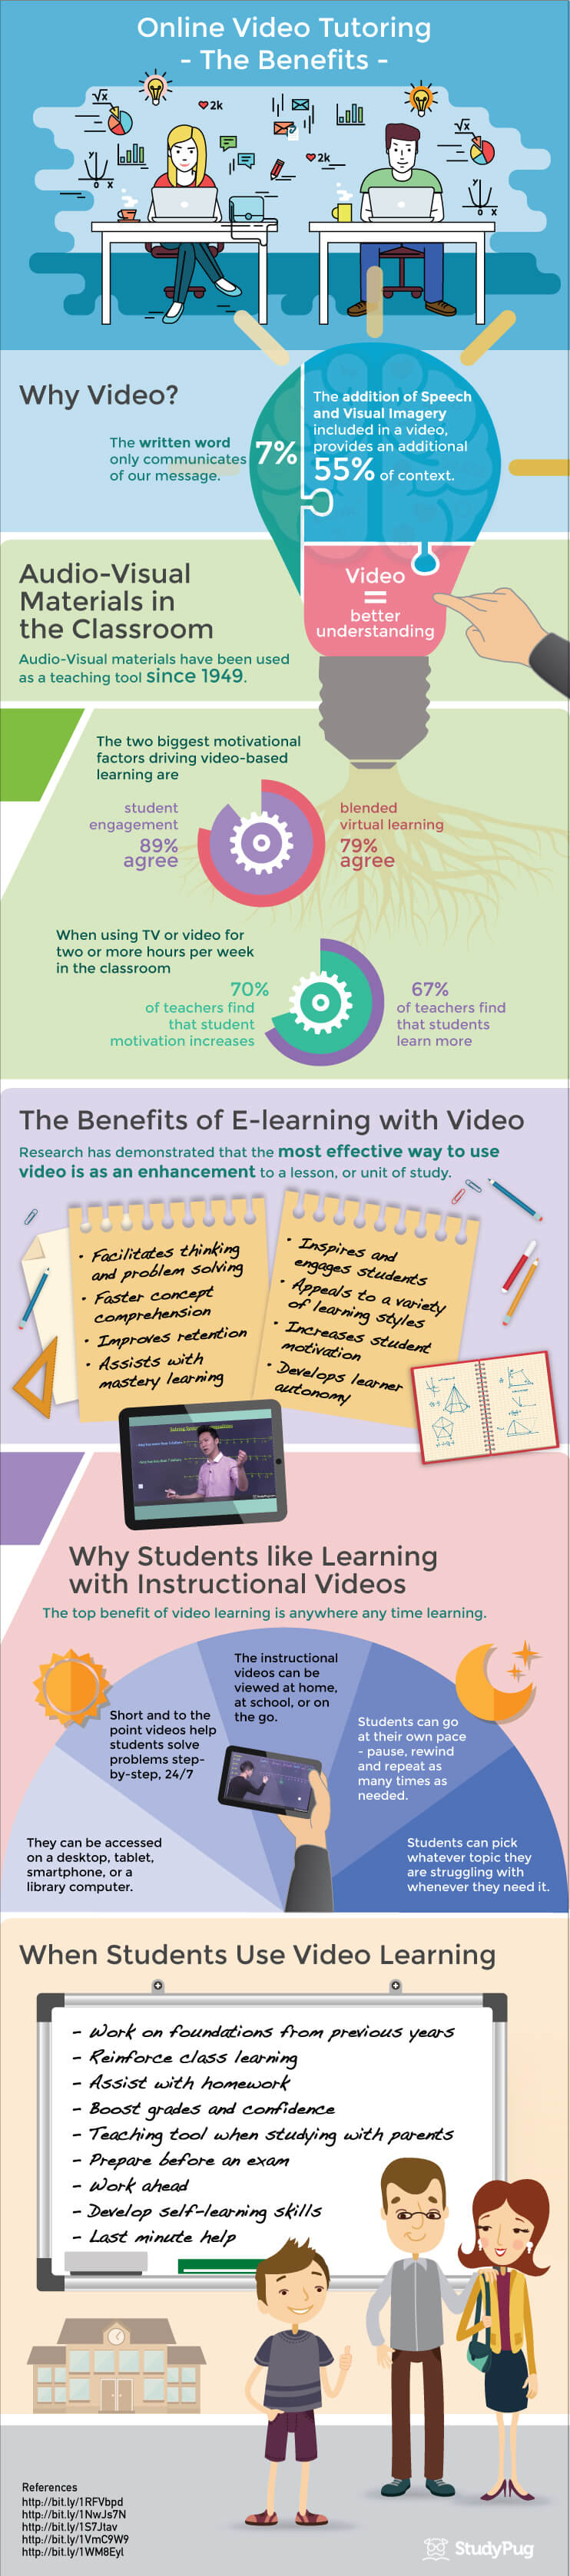 online-video-tutoring--why-it-works-infographic-plaza